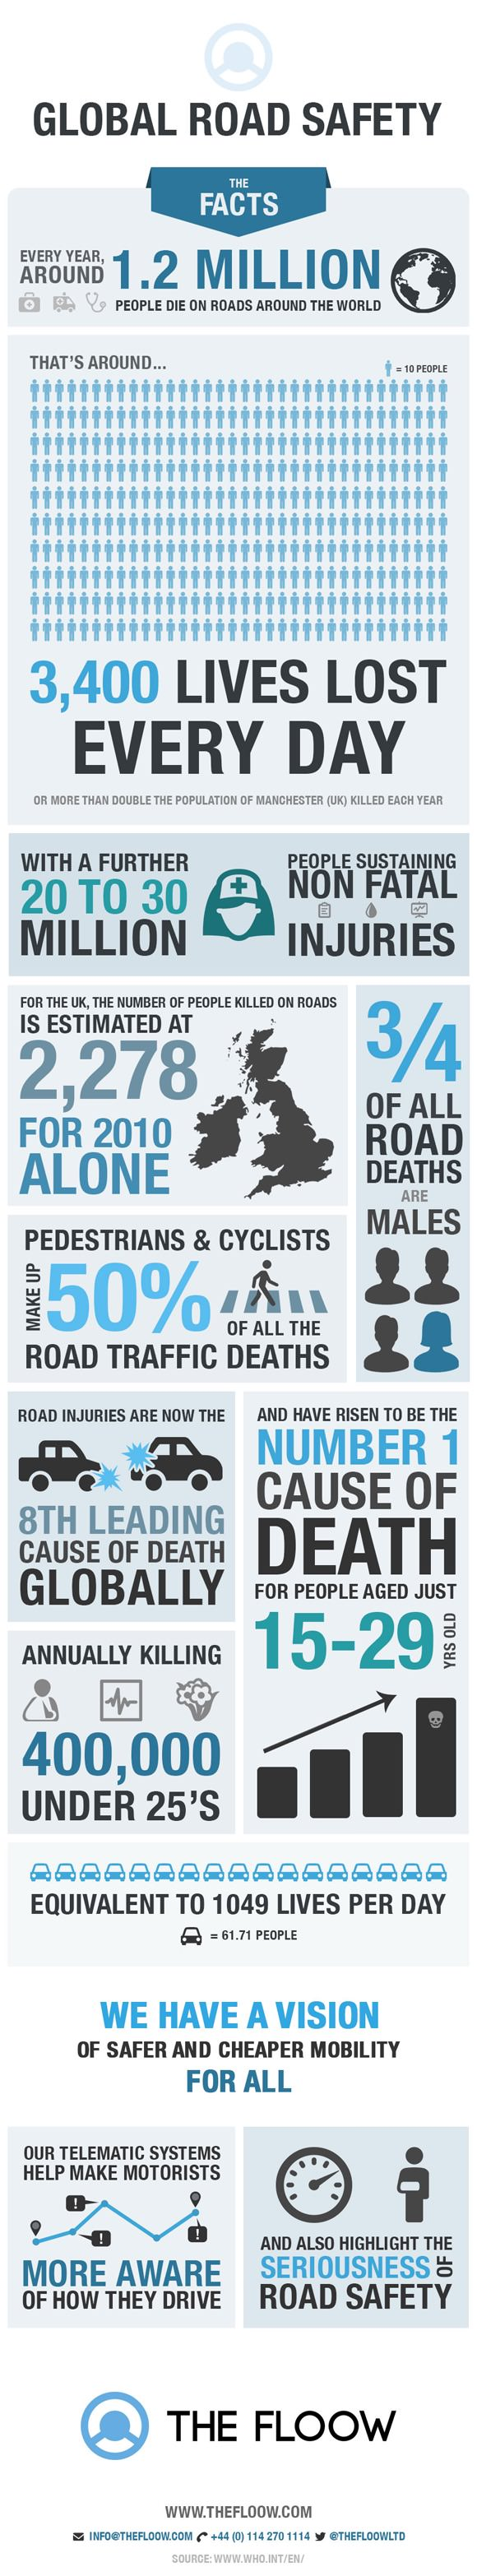 the floow road safety infographic